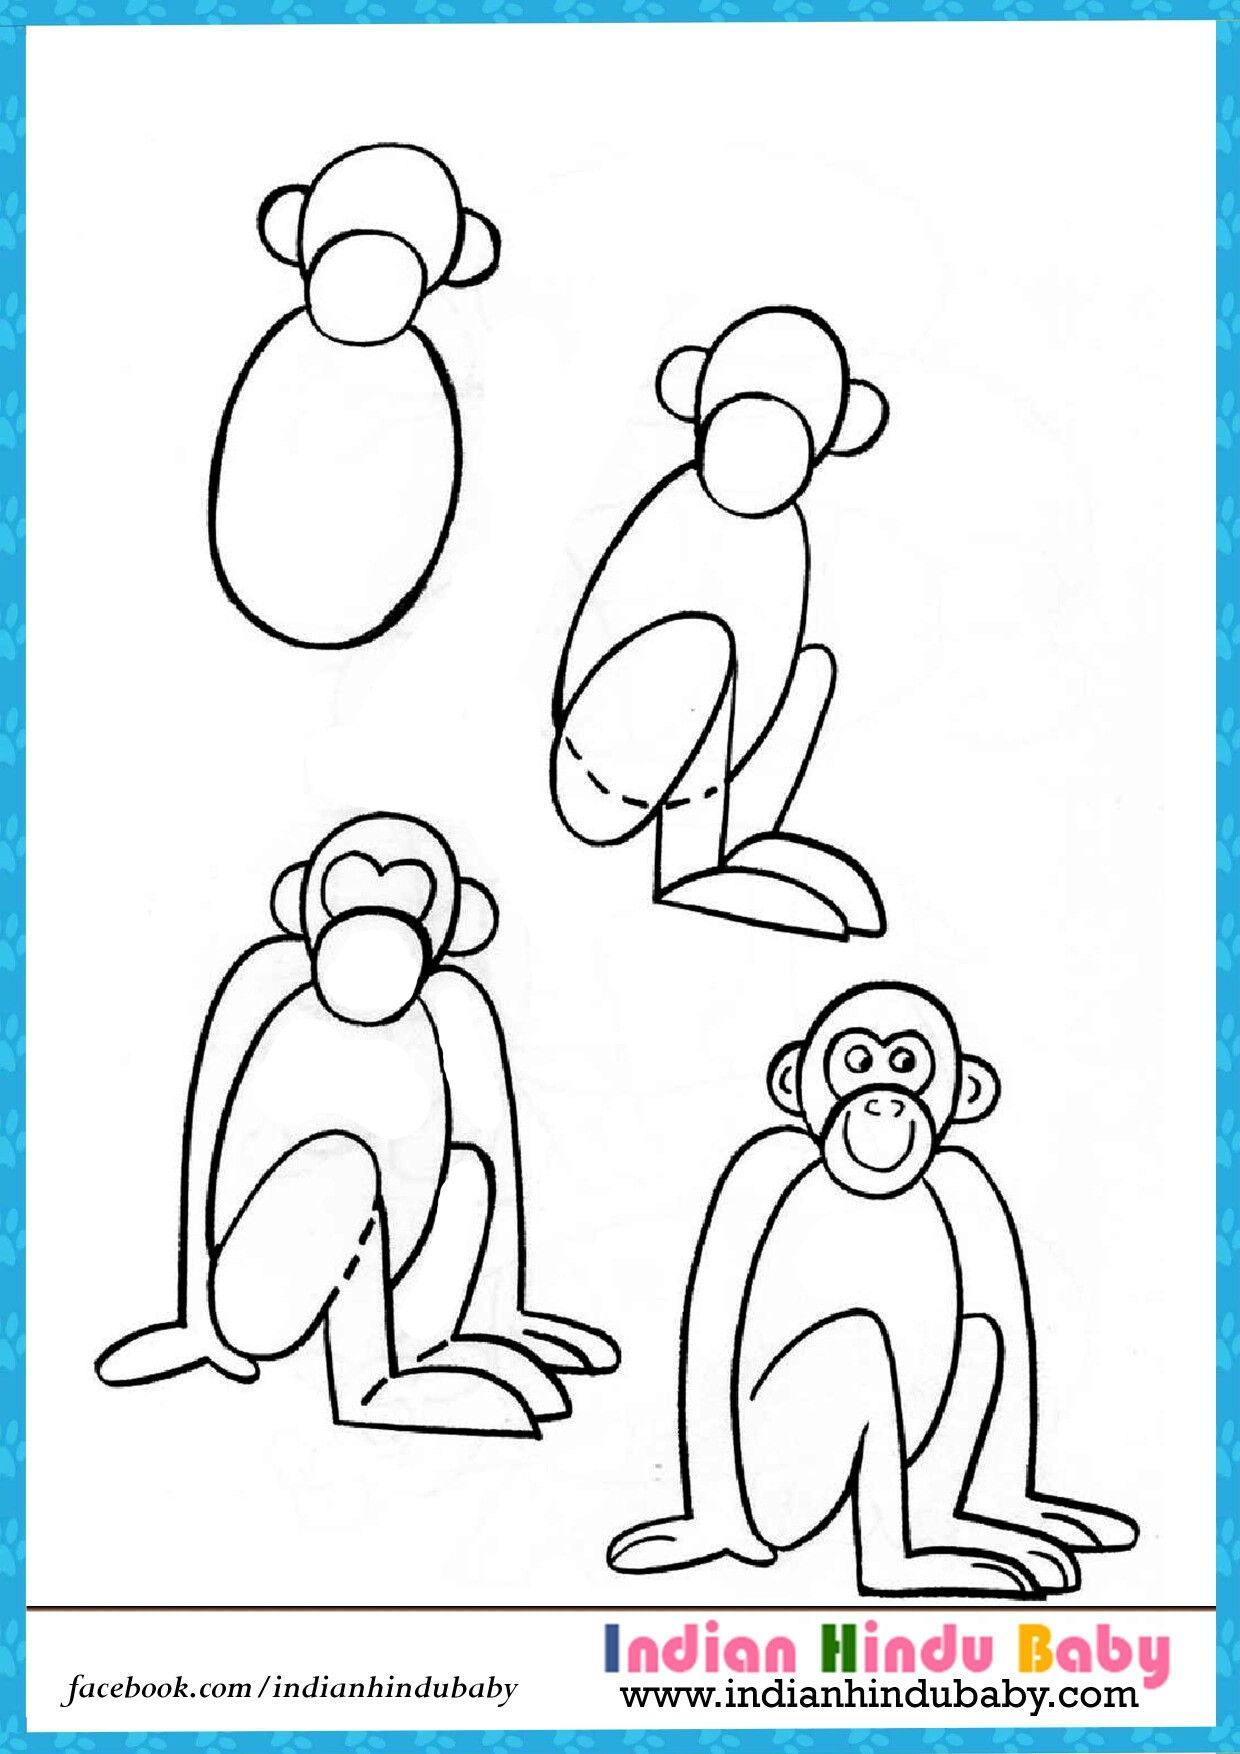 Teach your kid to draw Monkey with simple drawing tips https